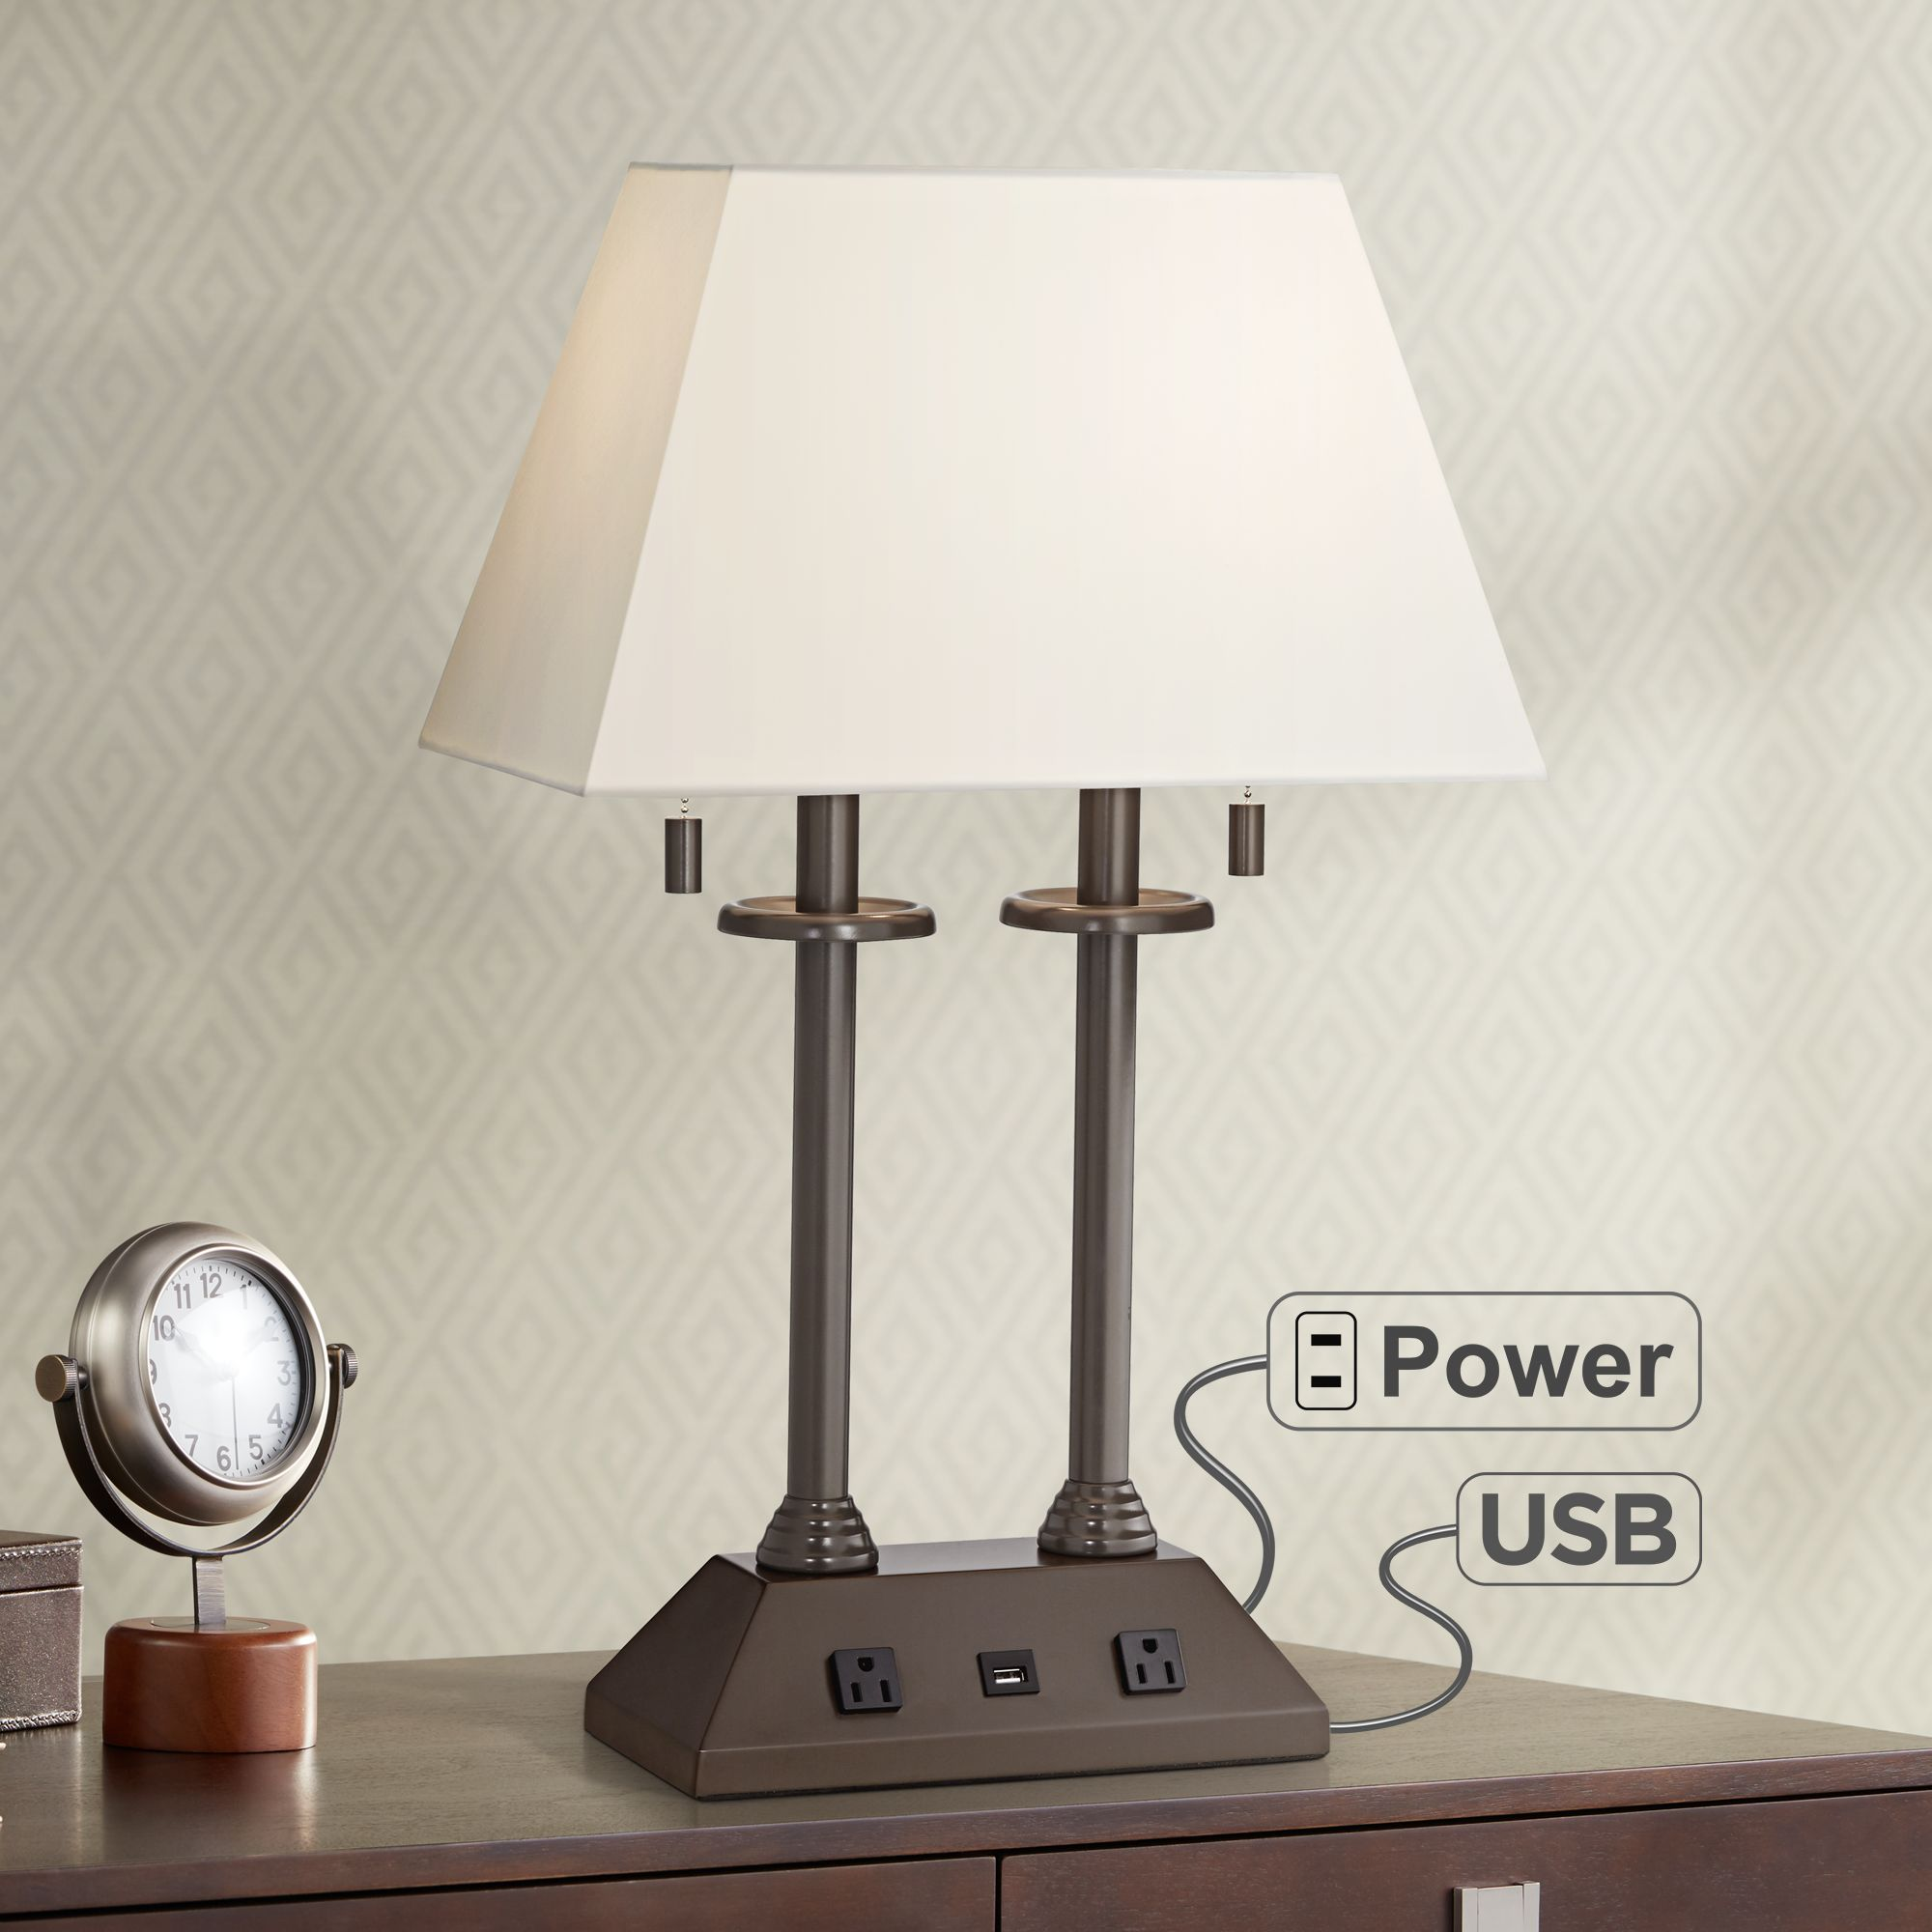 Regency Hill Traditional Desk Table Lamp with USB and AC Power Outlet in Base Bronze Rectangular Fabric Shade for Bedroom Office